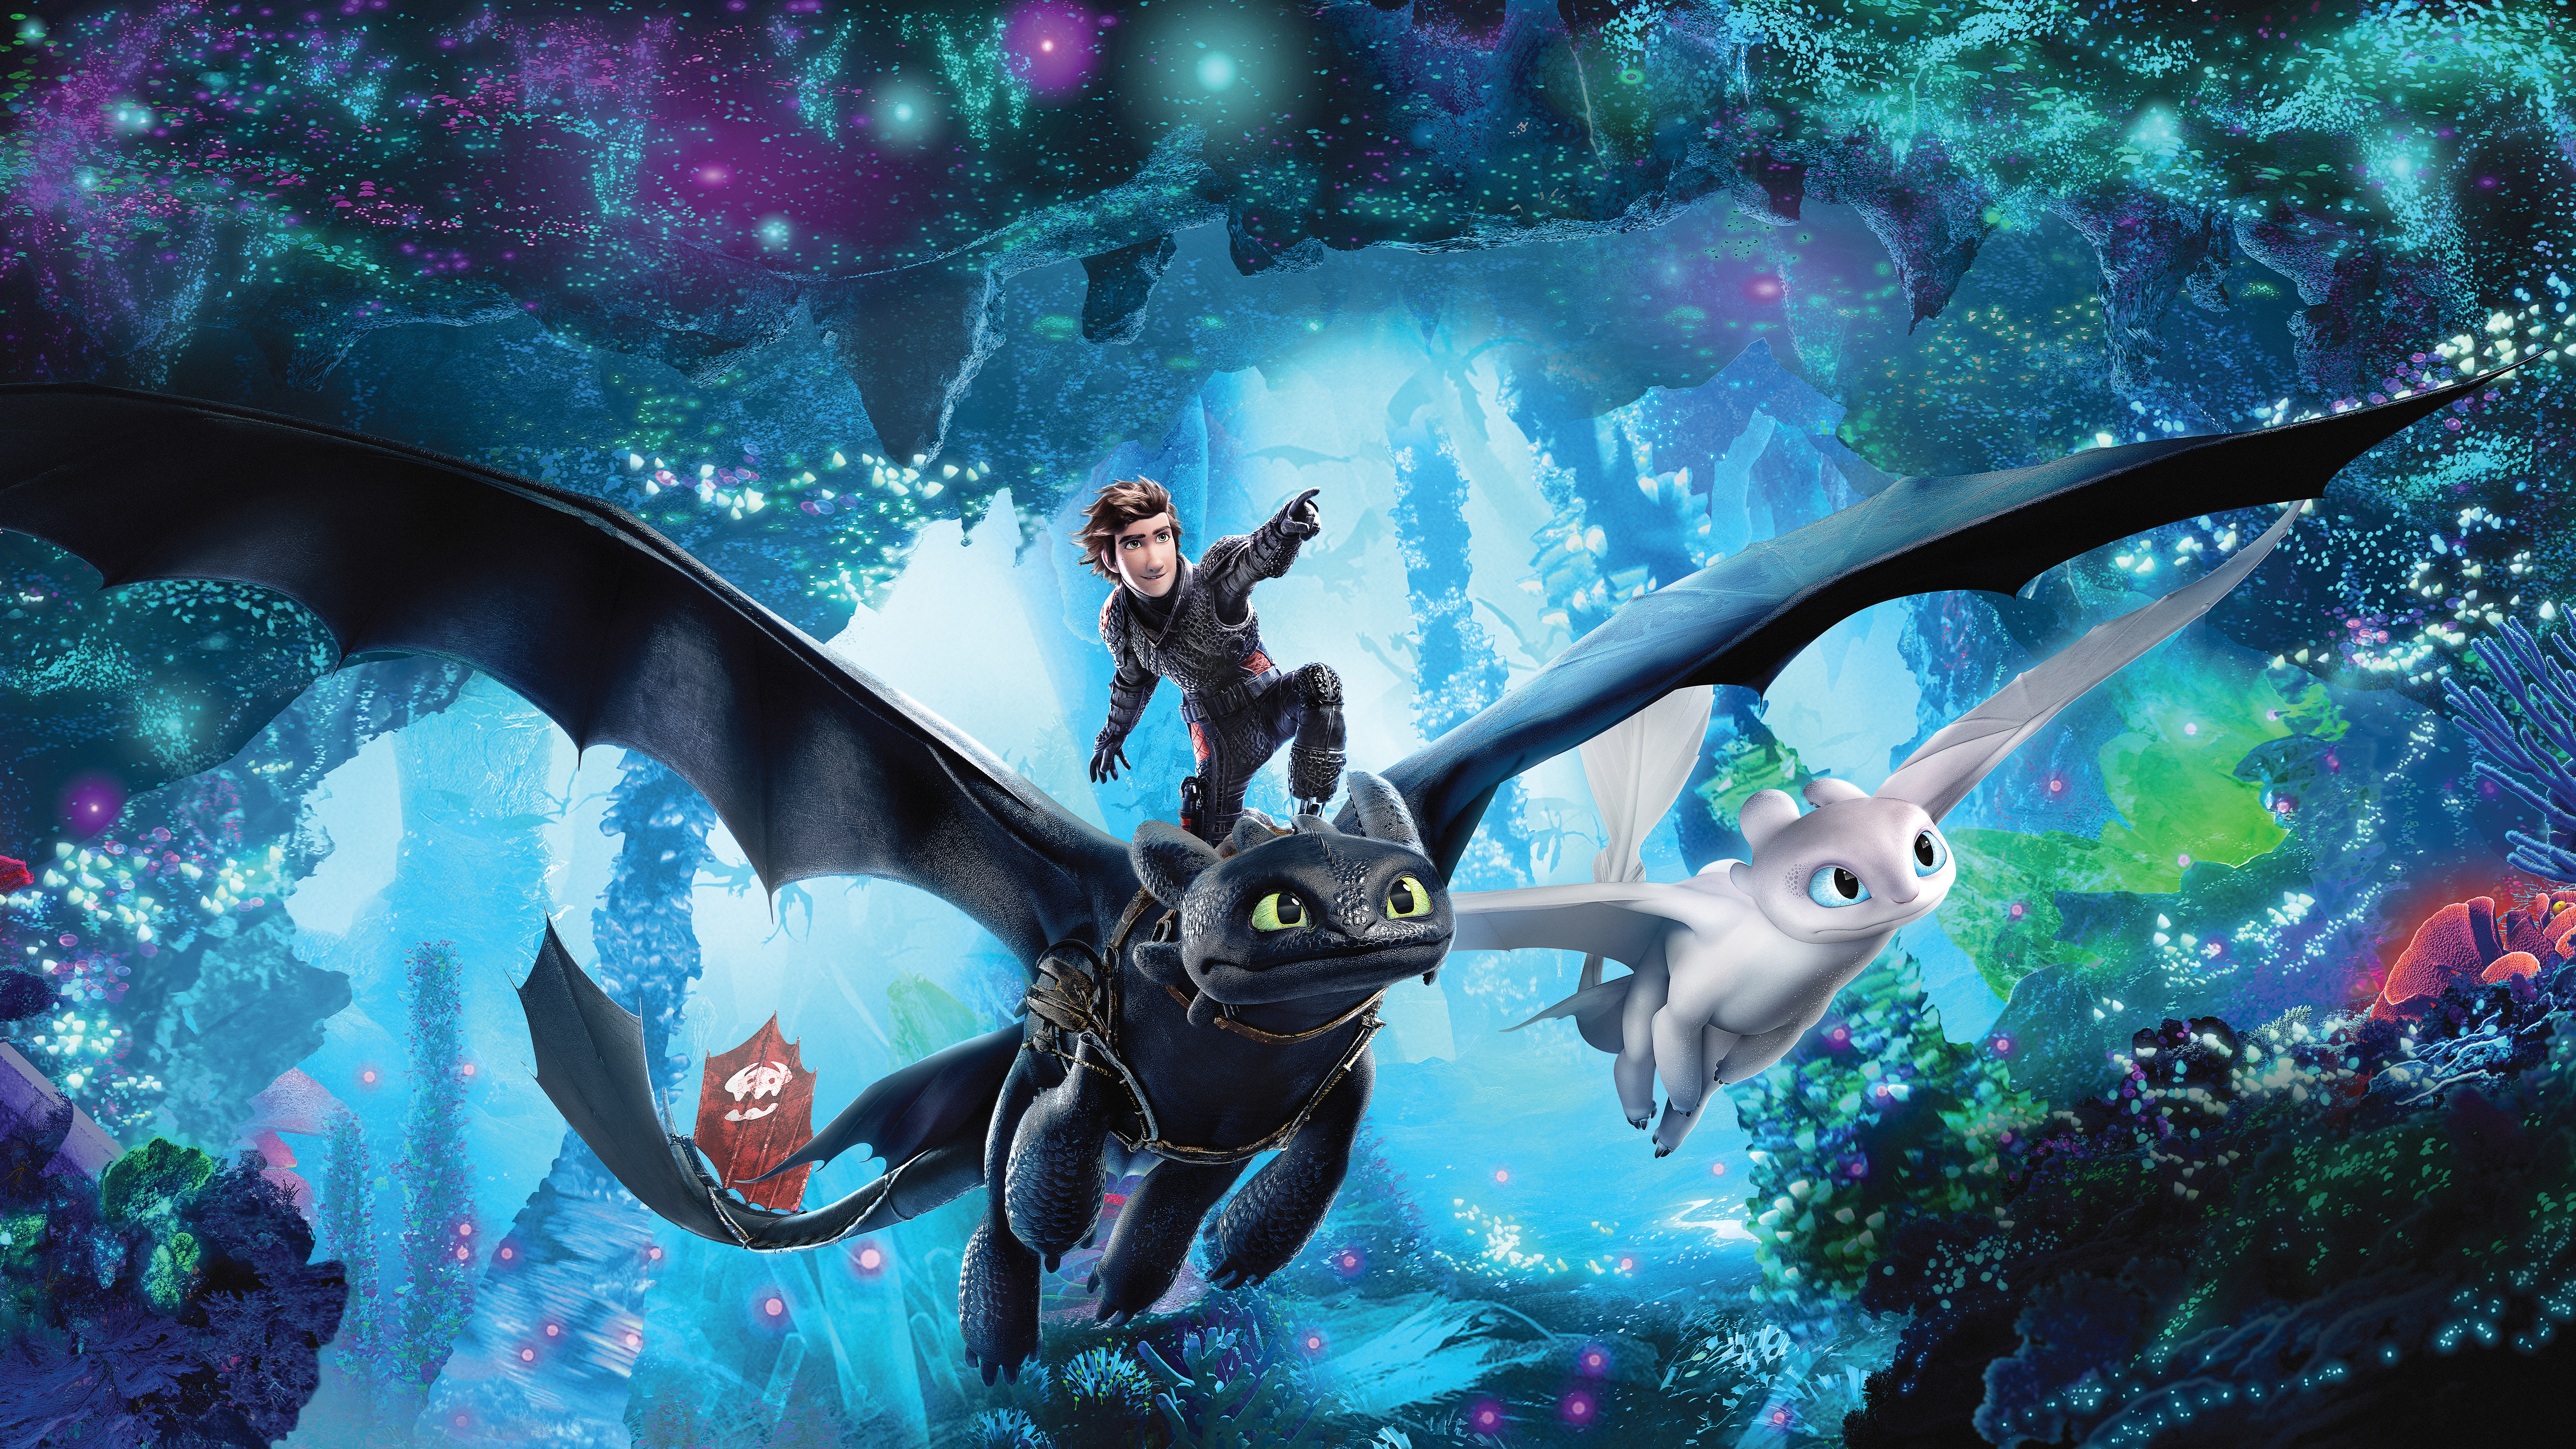 How To Train Your Dragon 3 The Hidden World 2019 4k Wallpapers Hd